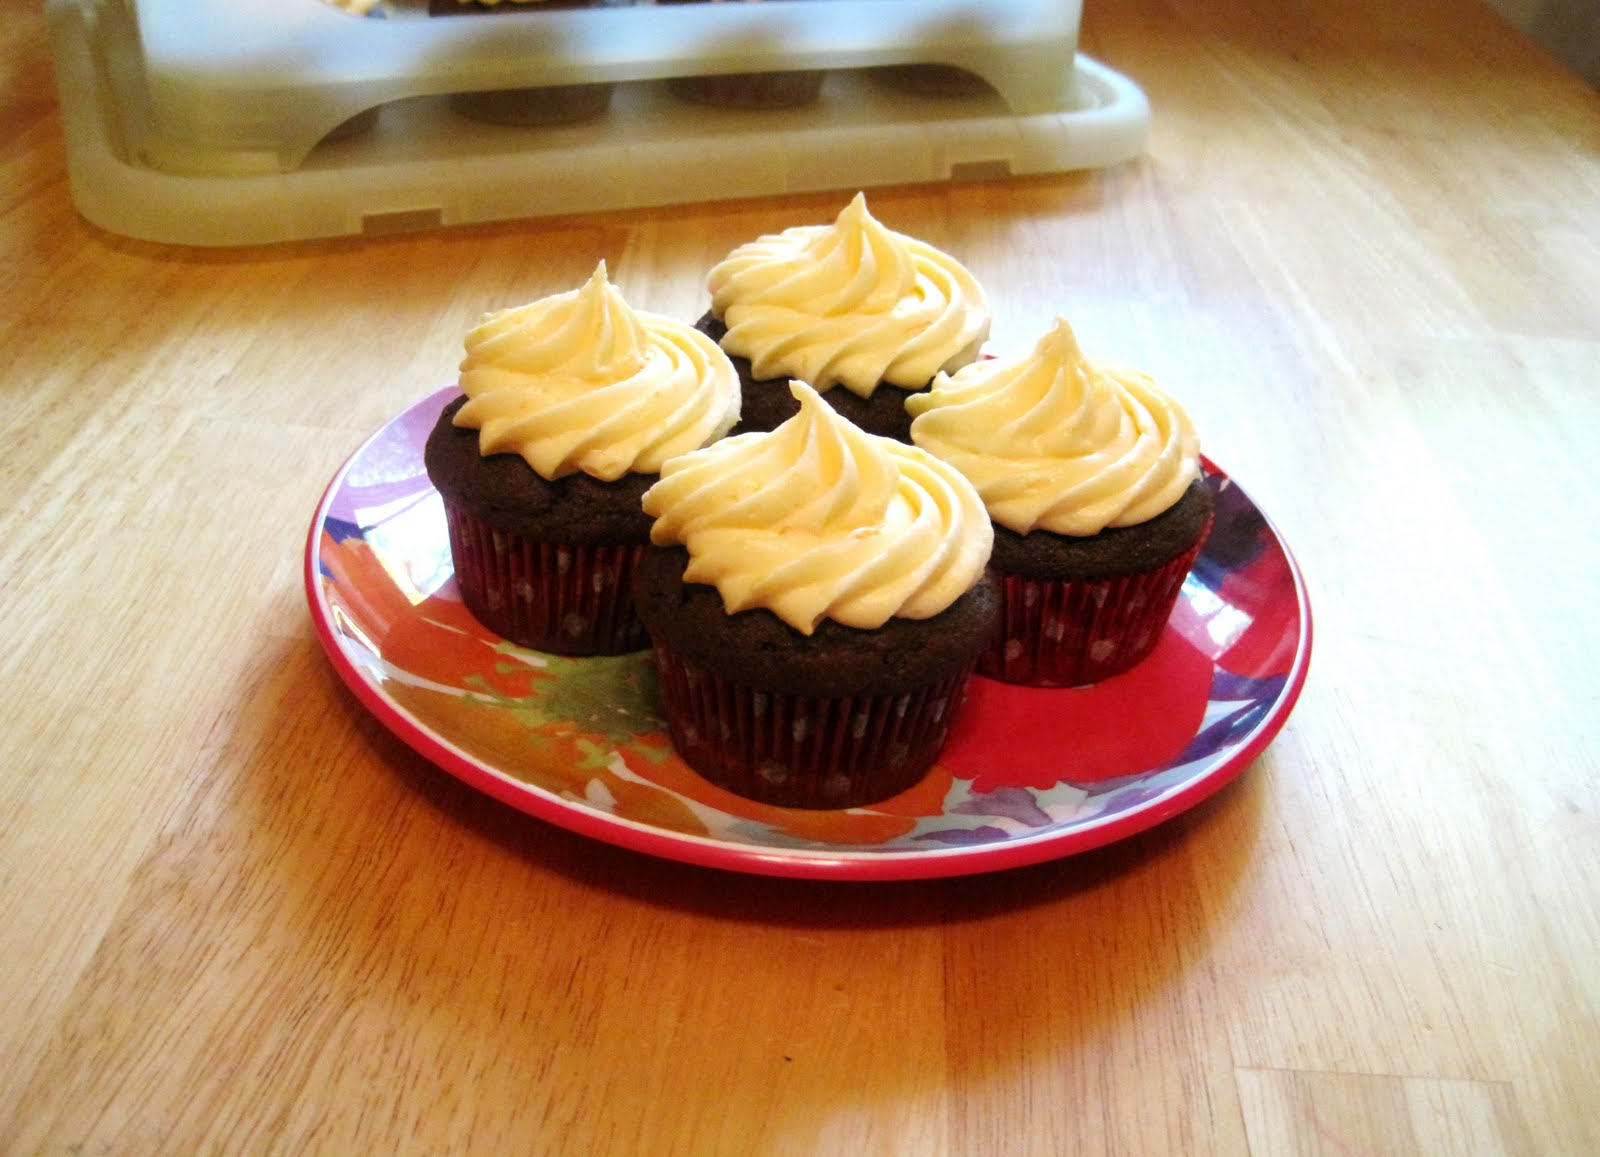 ... it. Love it.: Chocolate Cupcakes with Orange Cream Cheese Frosting